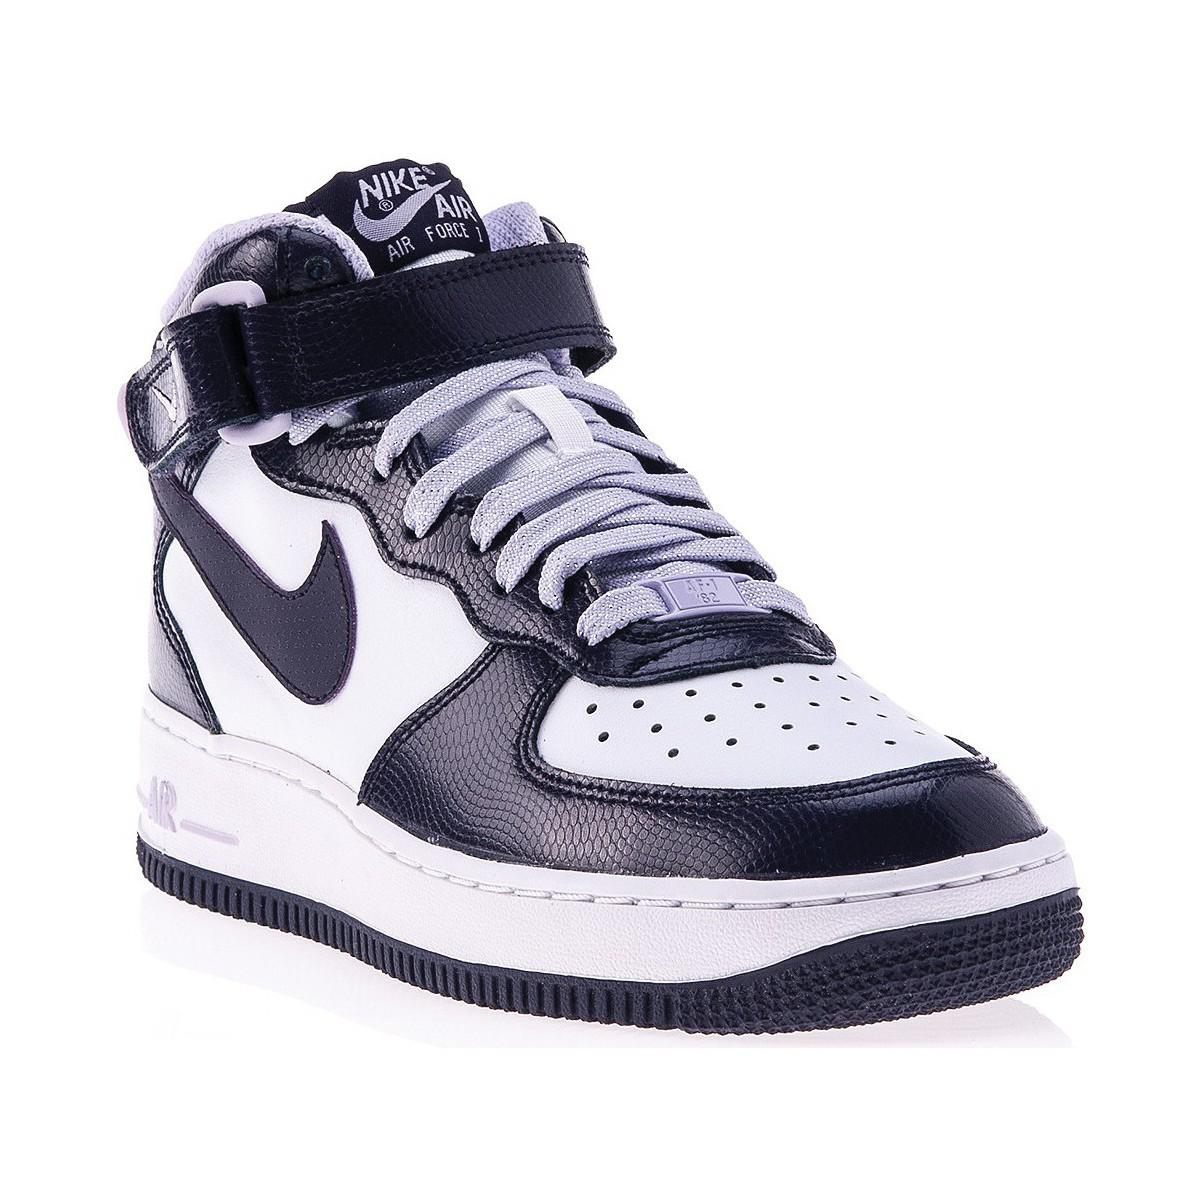 Nike Air Force 1 Mid Gs Women's Shoes (high-top Trainers) In